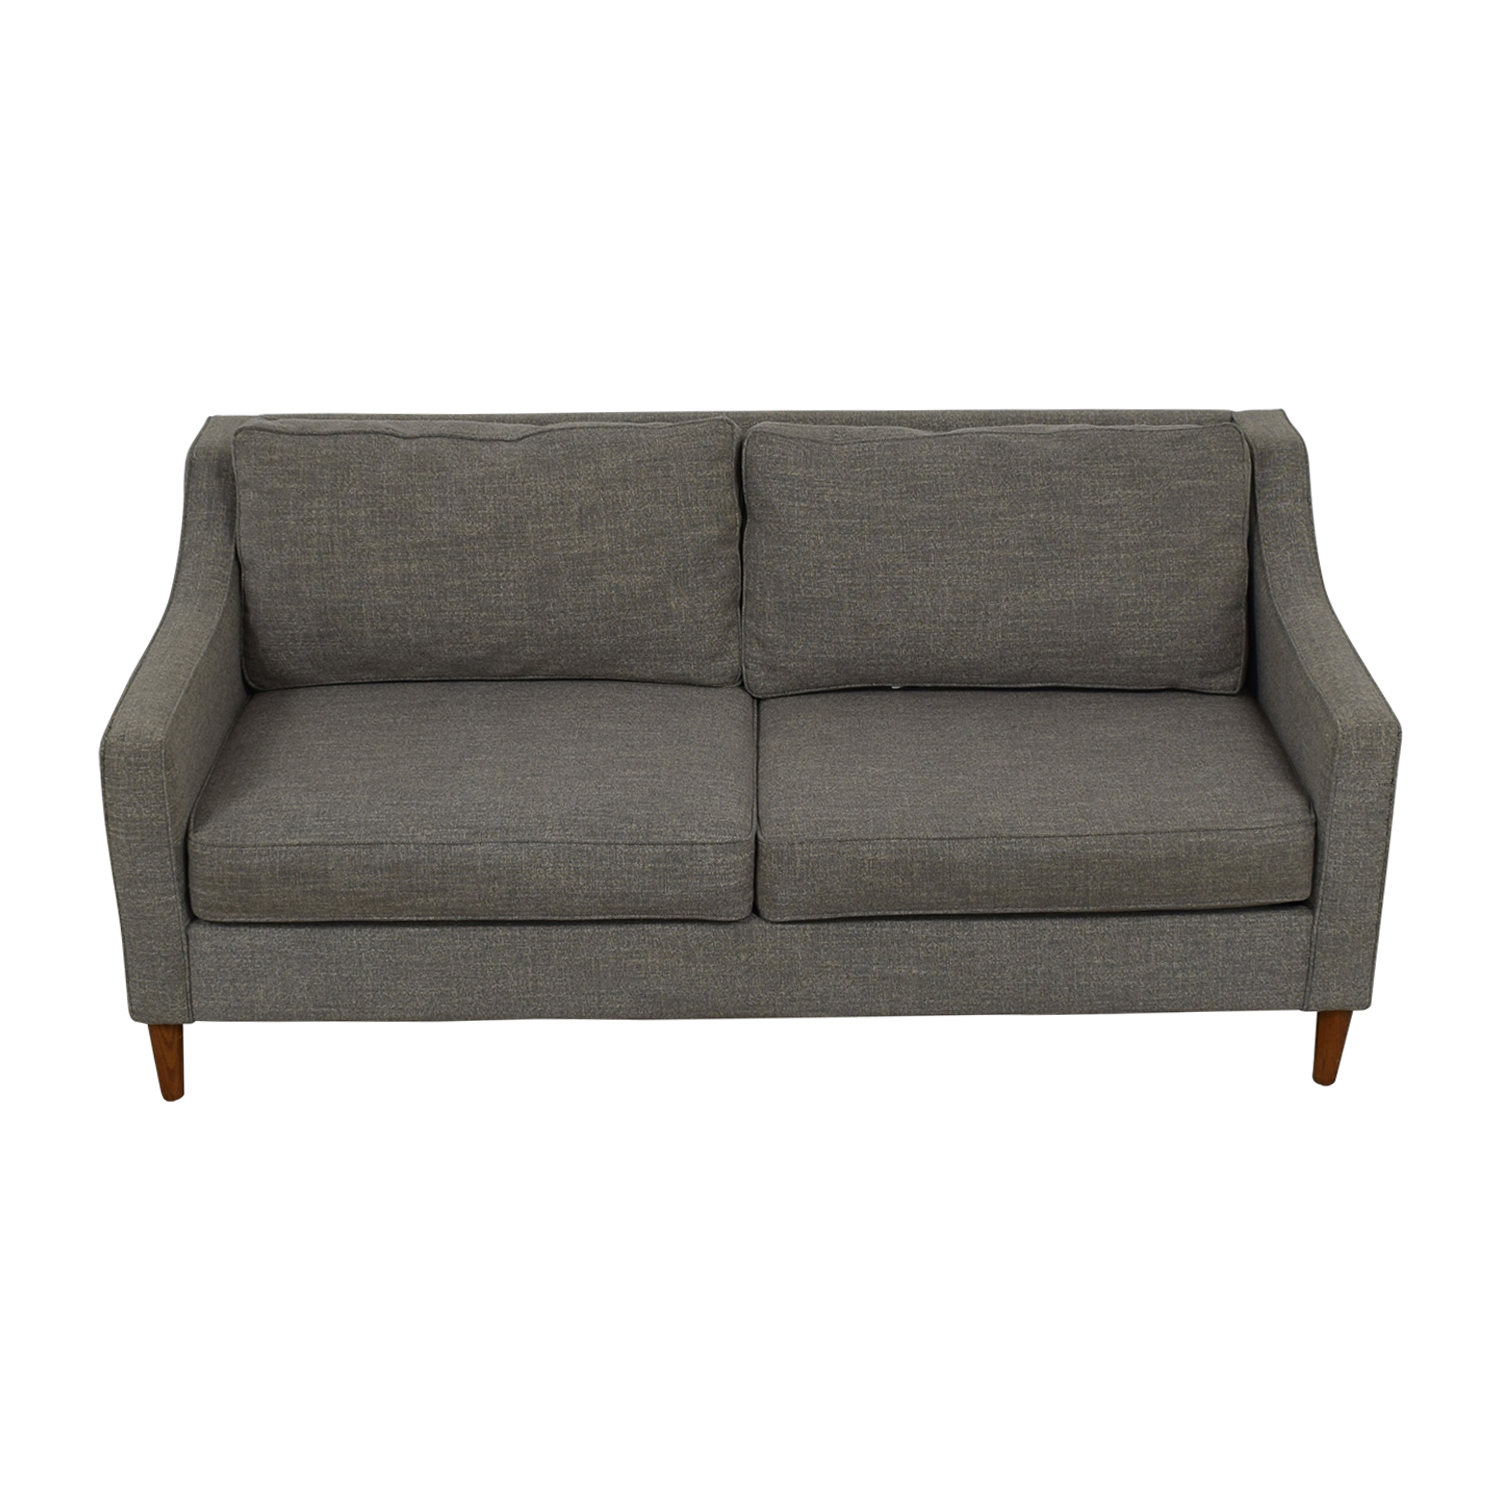 West Elm Paidge Grey Two-Cushion Sofa / Sofas